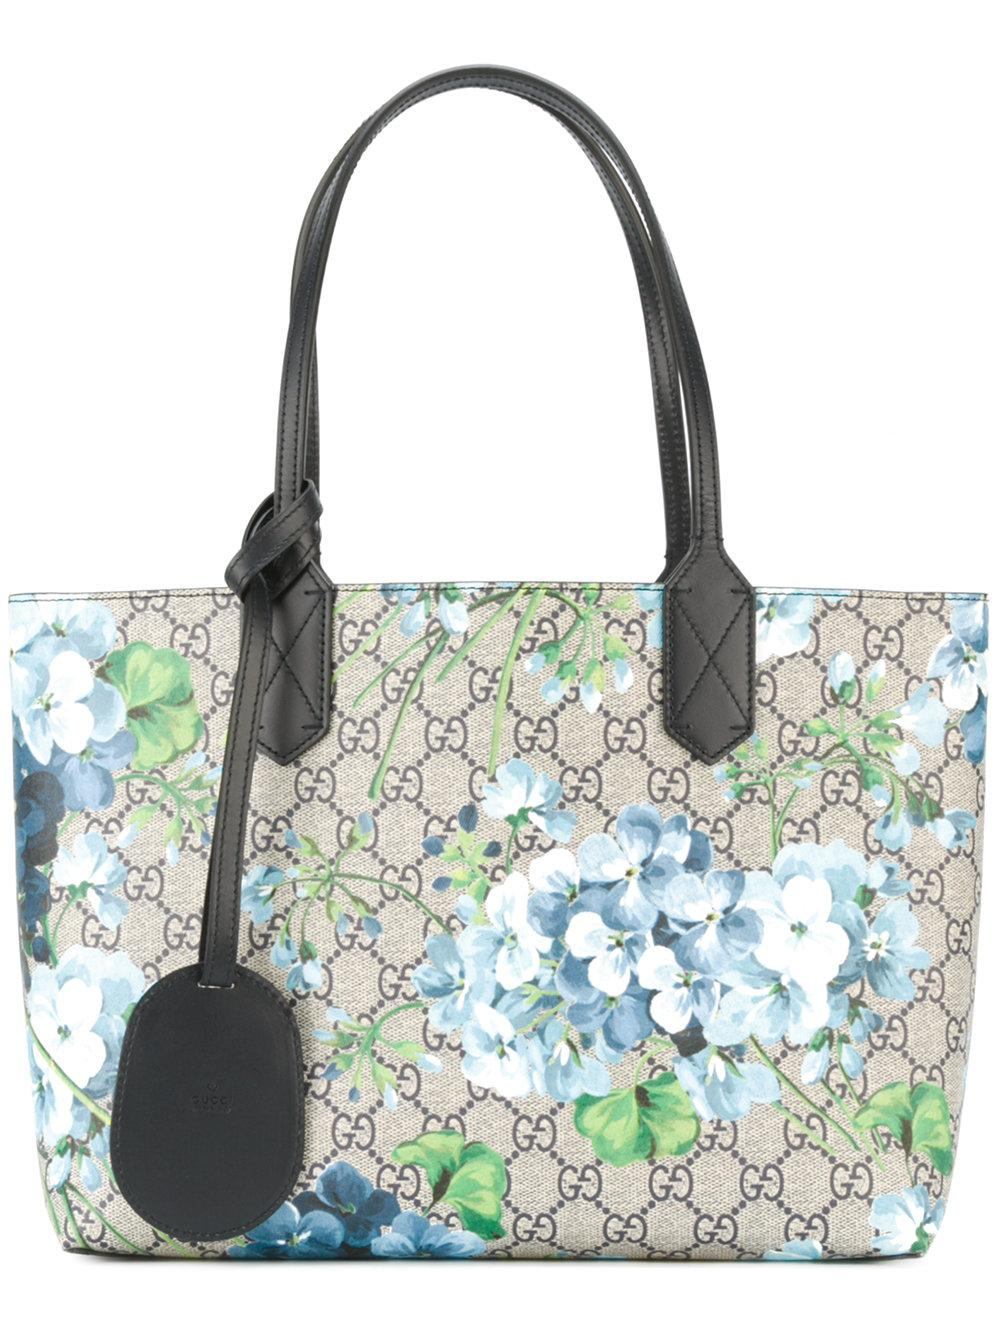 Gucci Reverse Double Shopping Bag Small Gg Floral Blue In Blue | Lyst